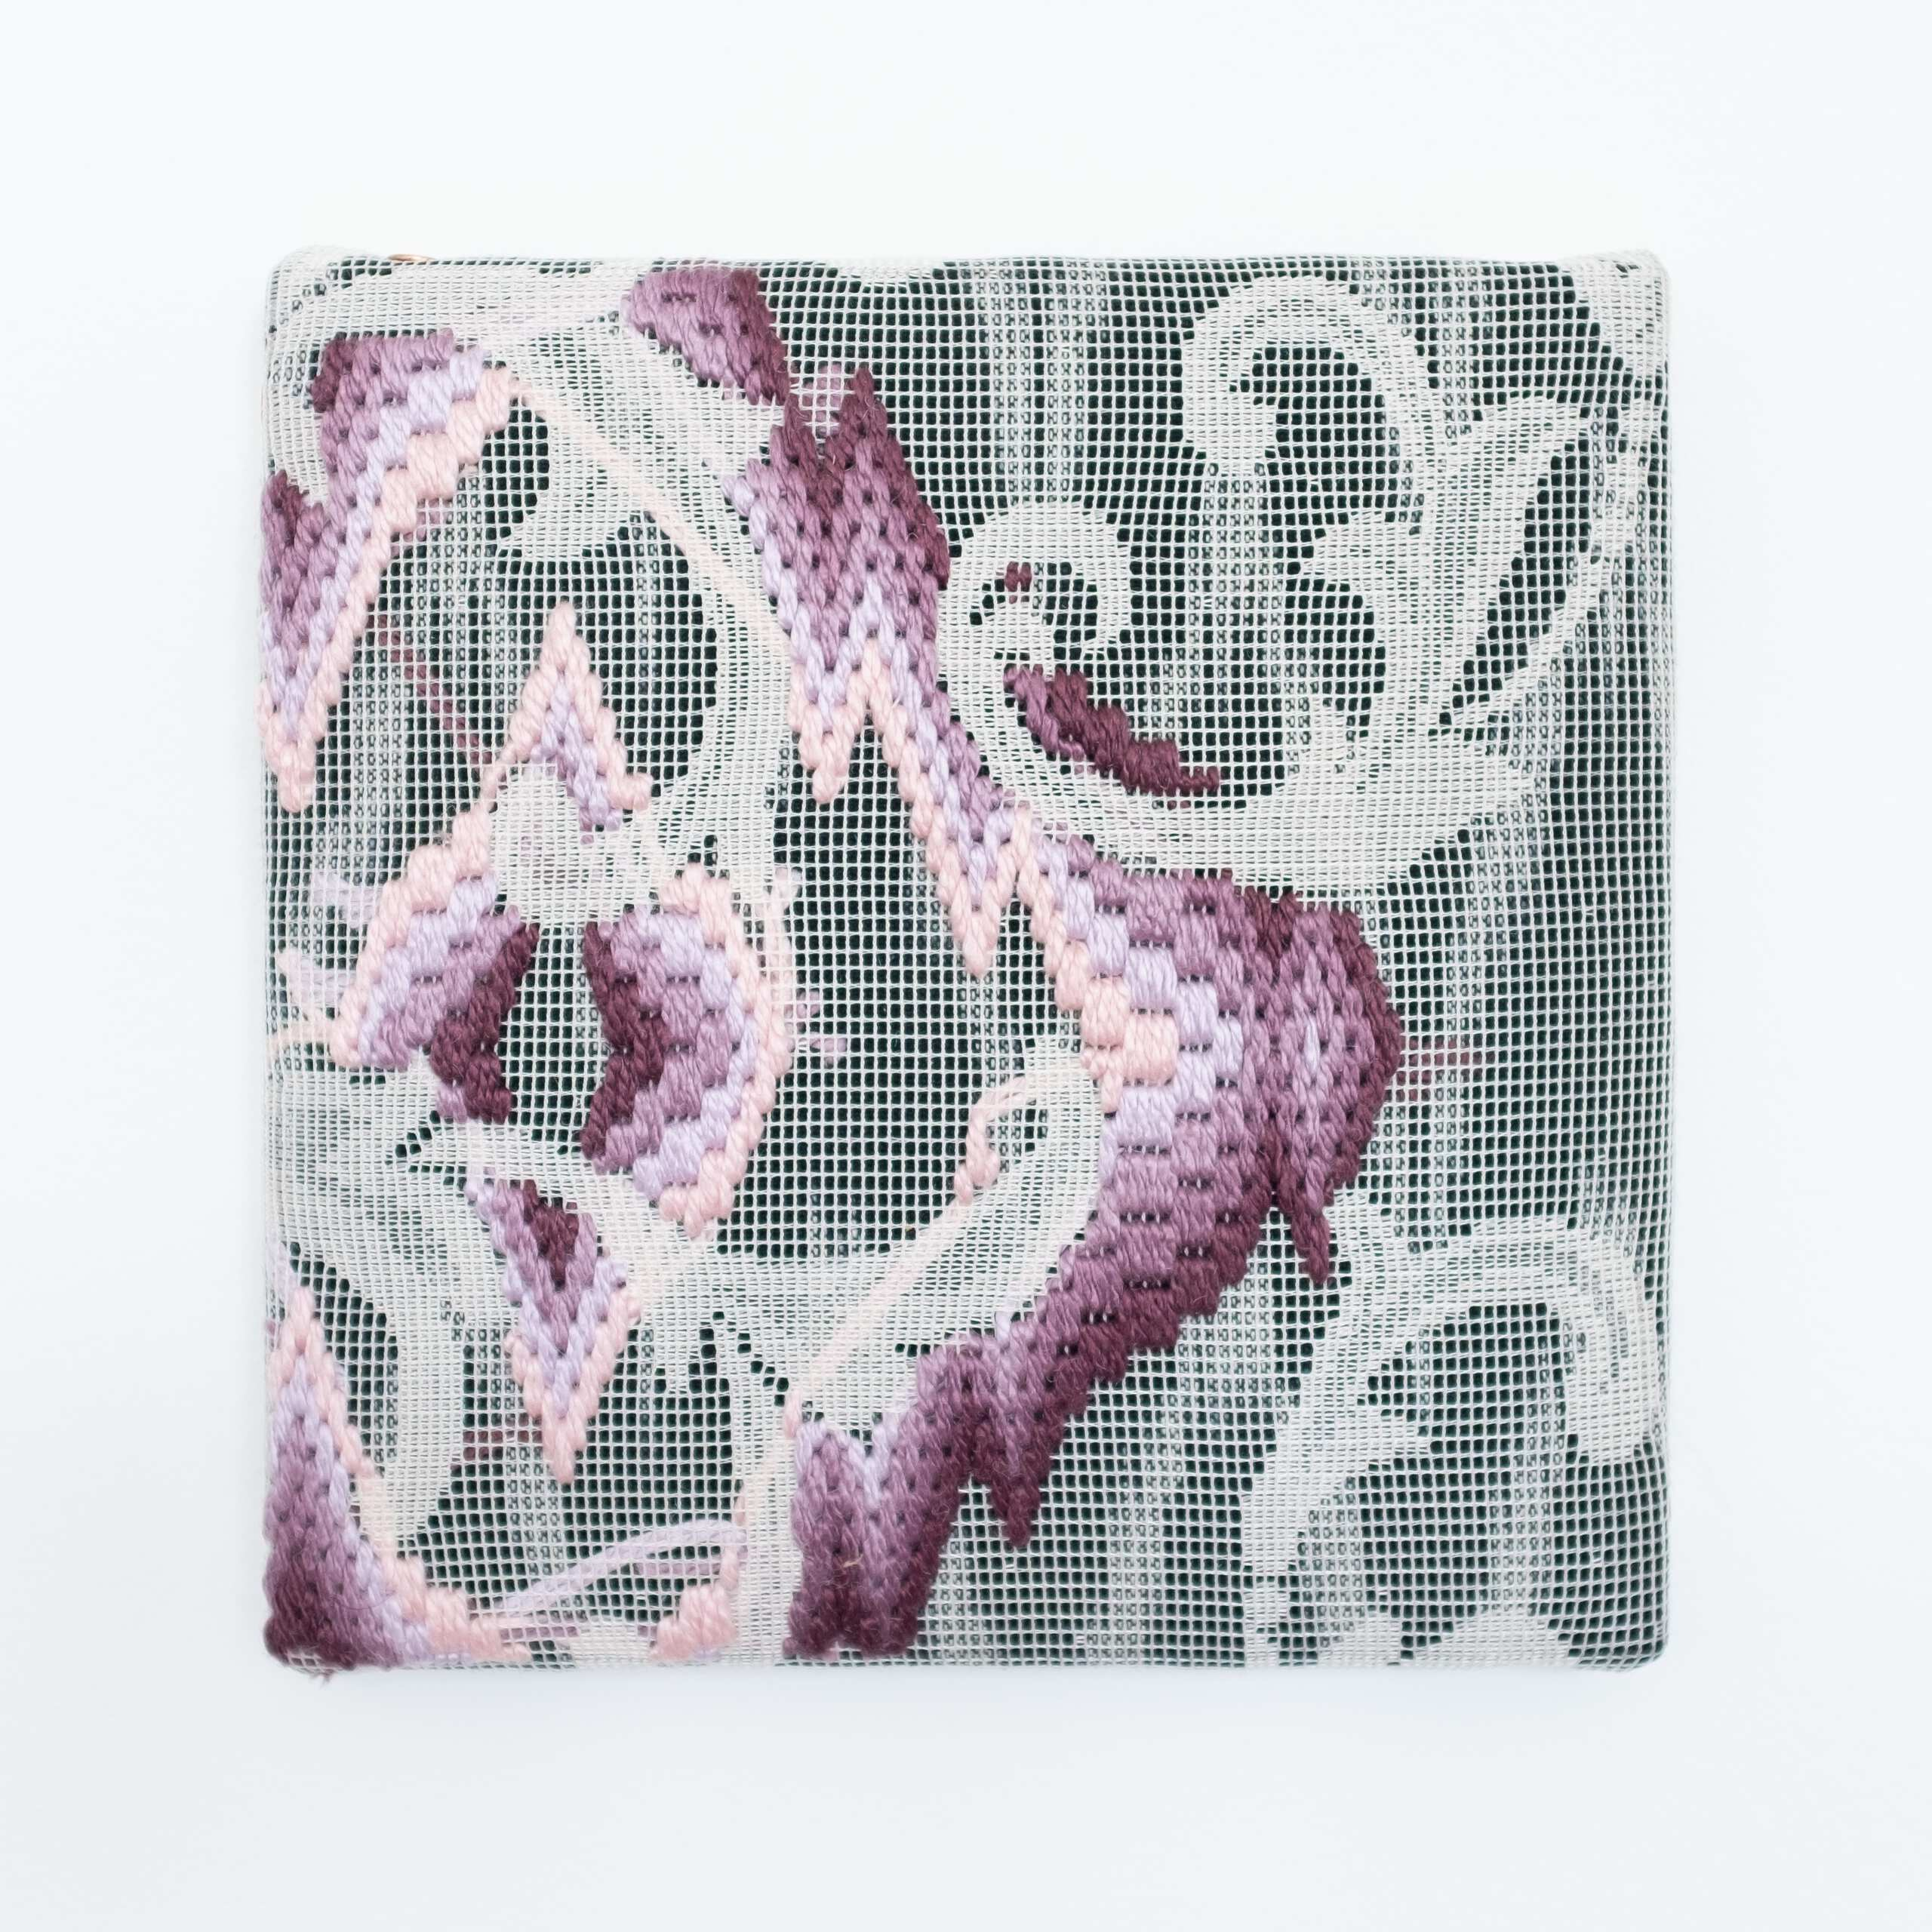 Triple-layer gather-gusset [purple-pink harmony], Hand-embroidered silk on lace over fabric, 2020